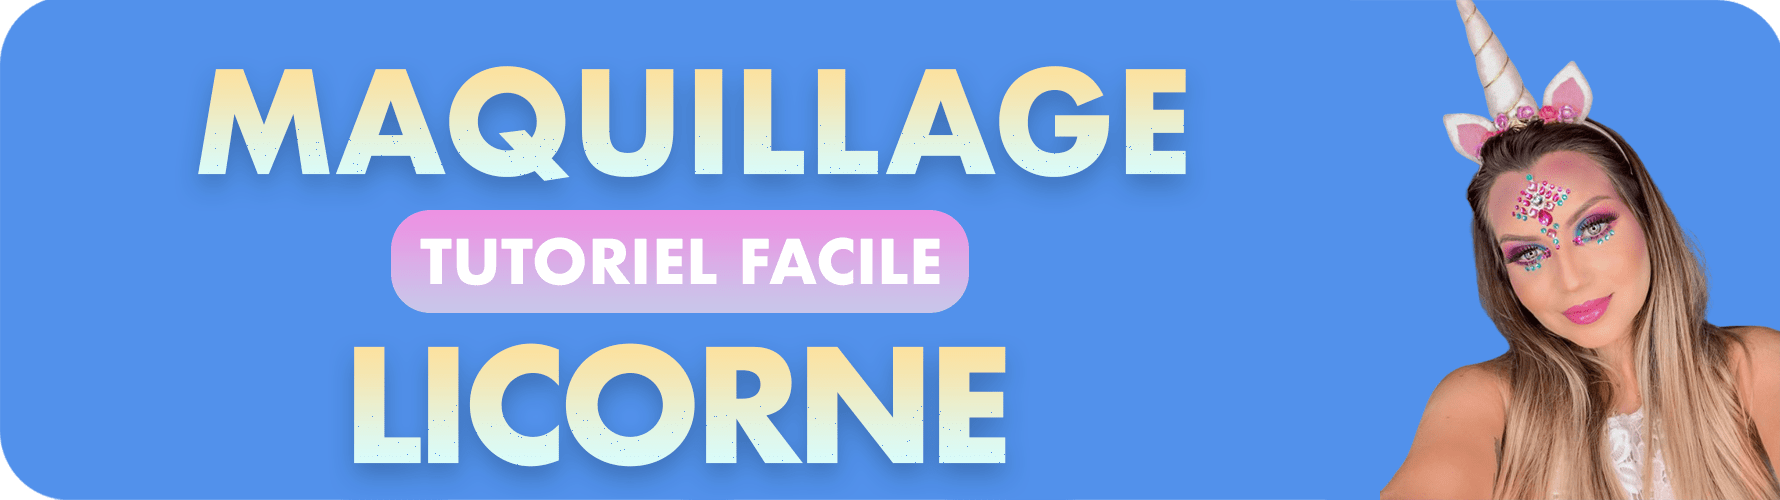 Maquillage licorne tutoriel facile